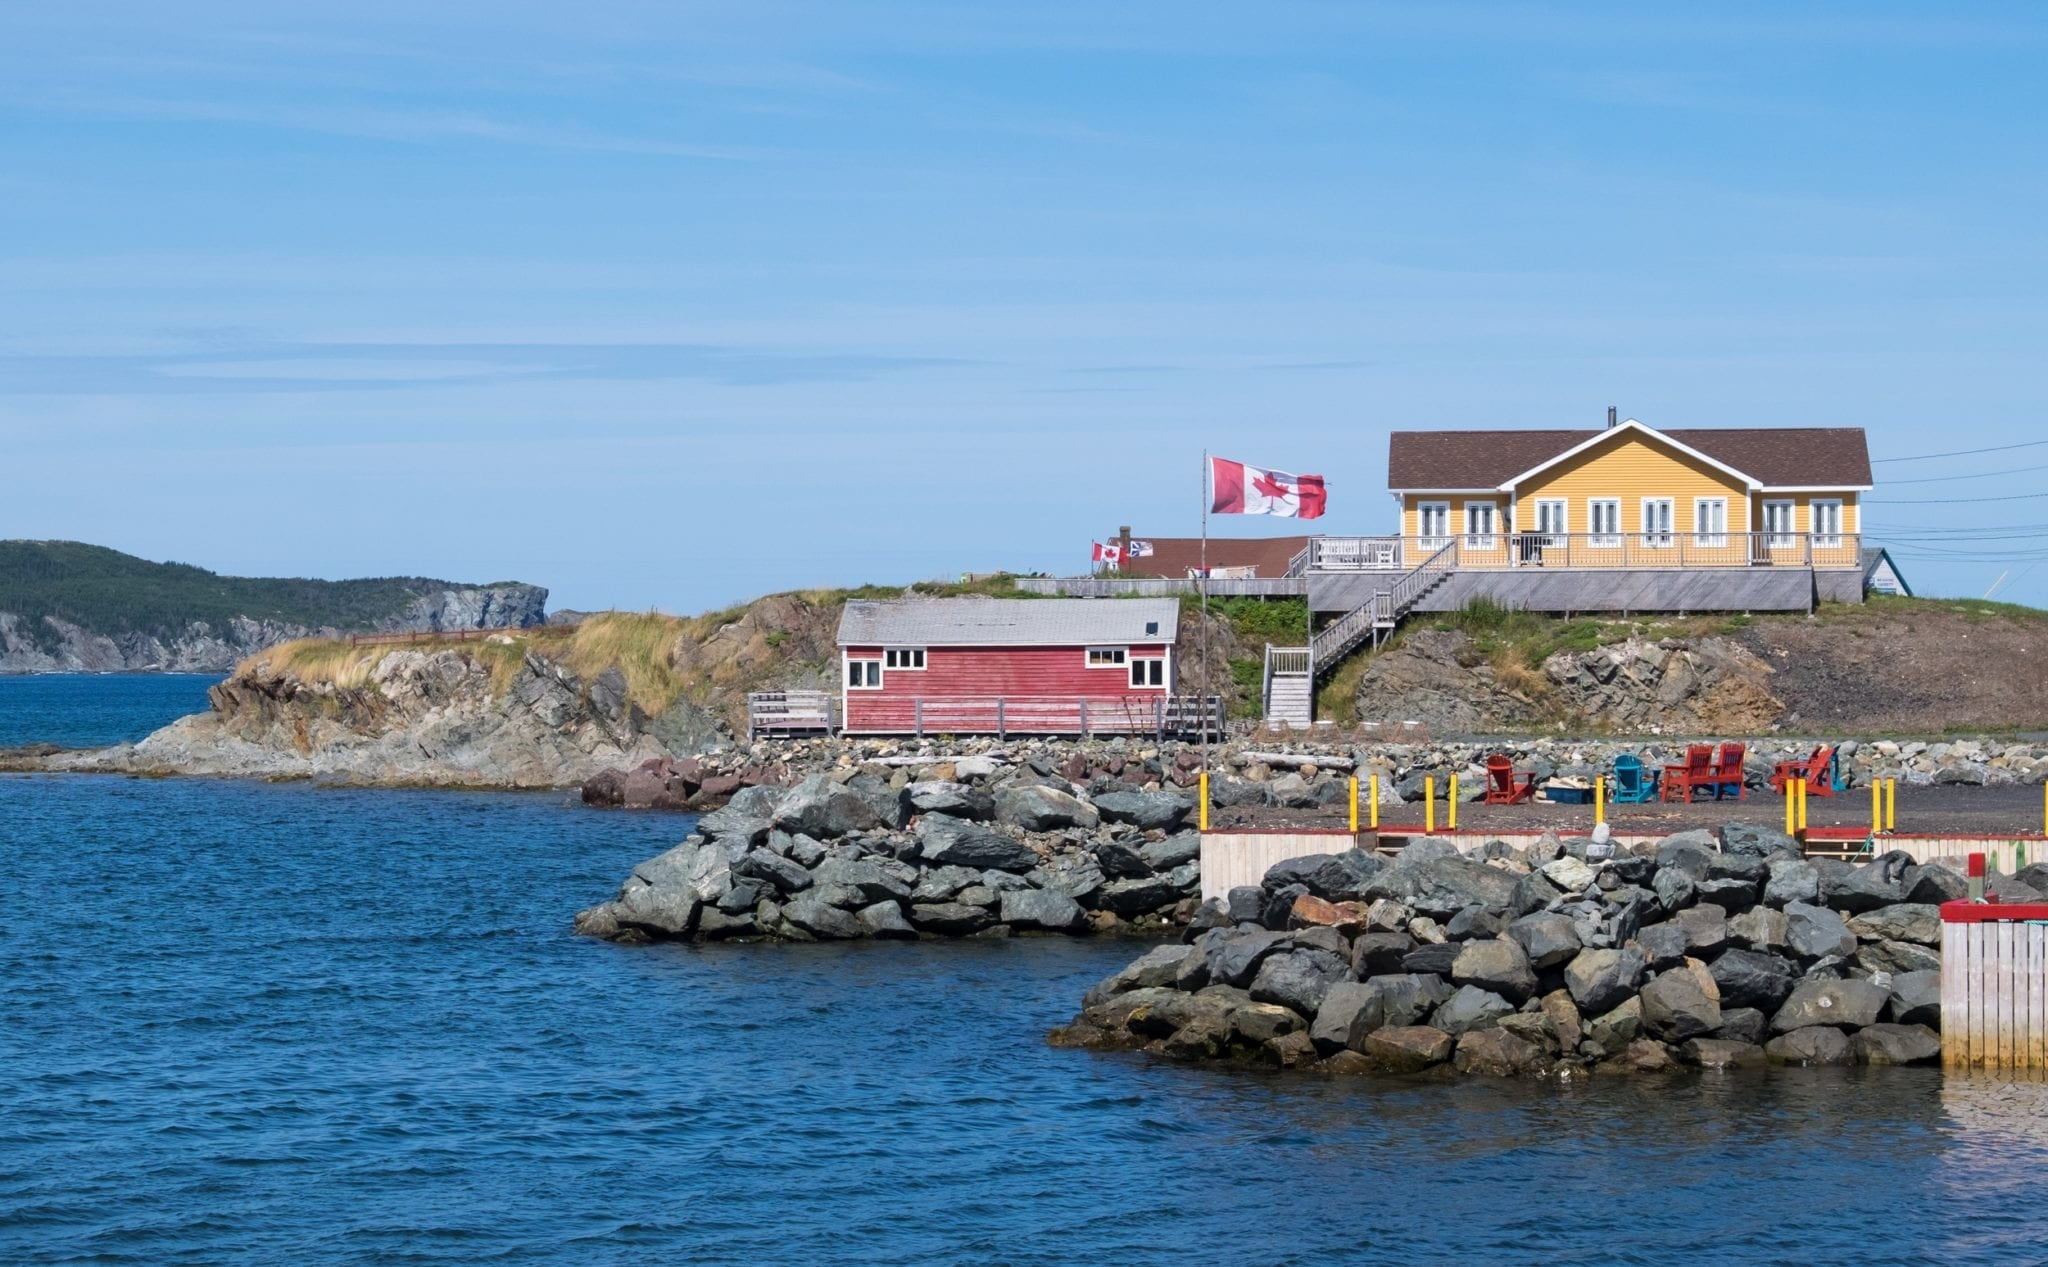 Red and yellow cottages on the water's edge, a Canadian flag flying.